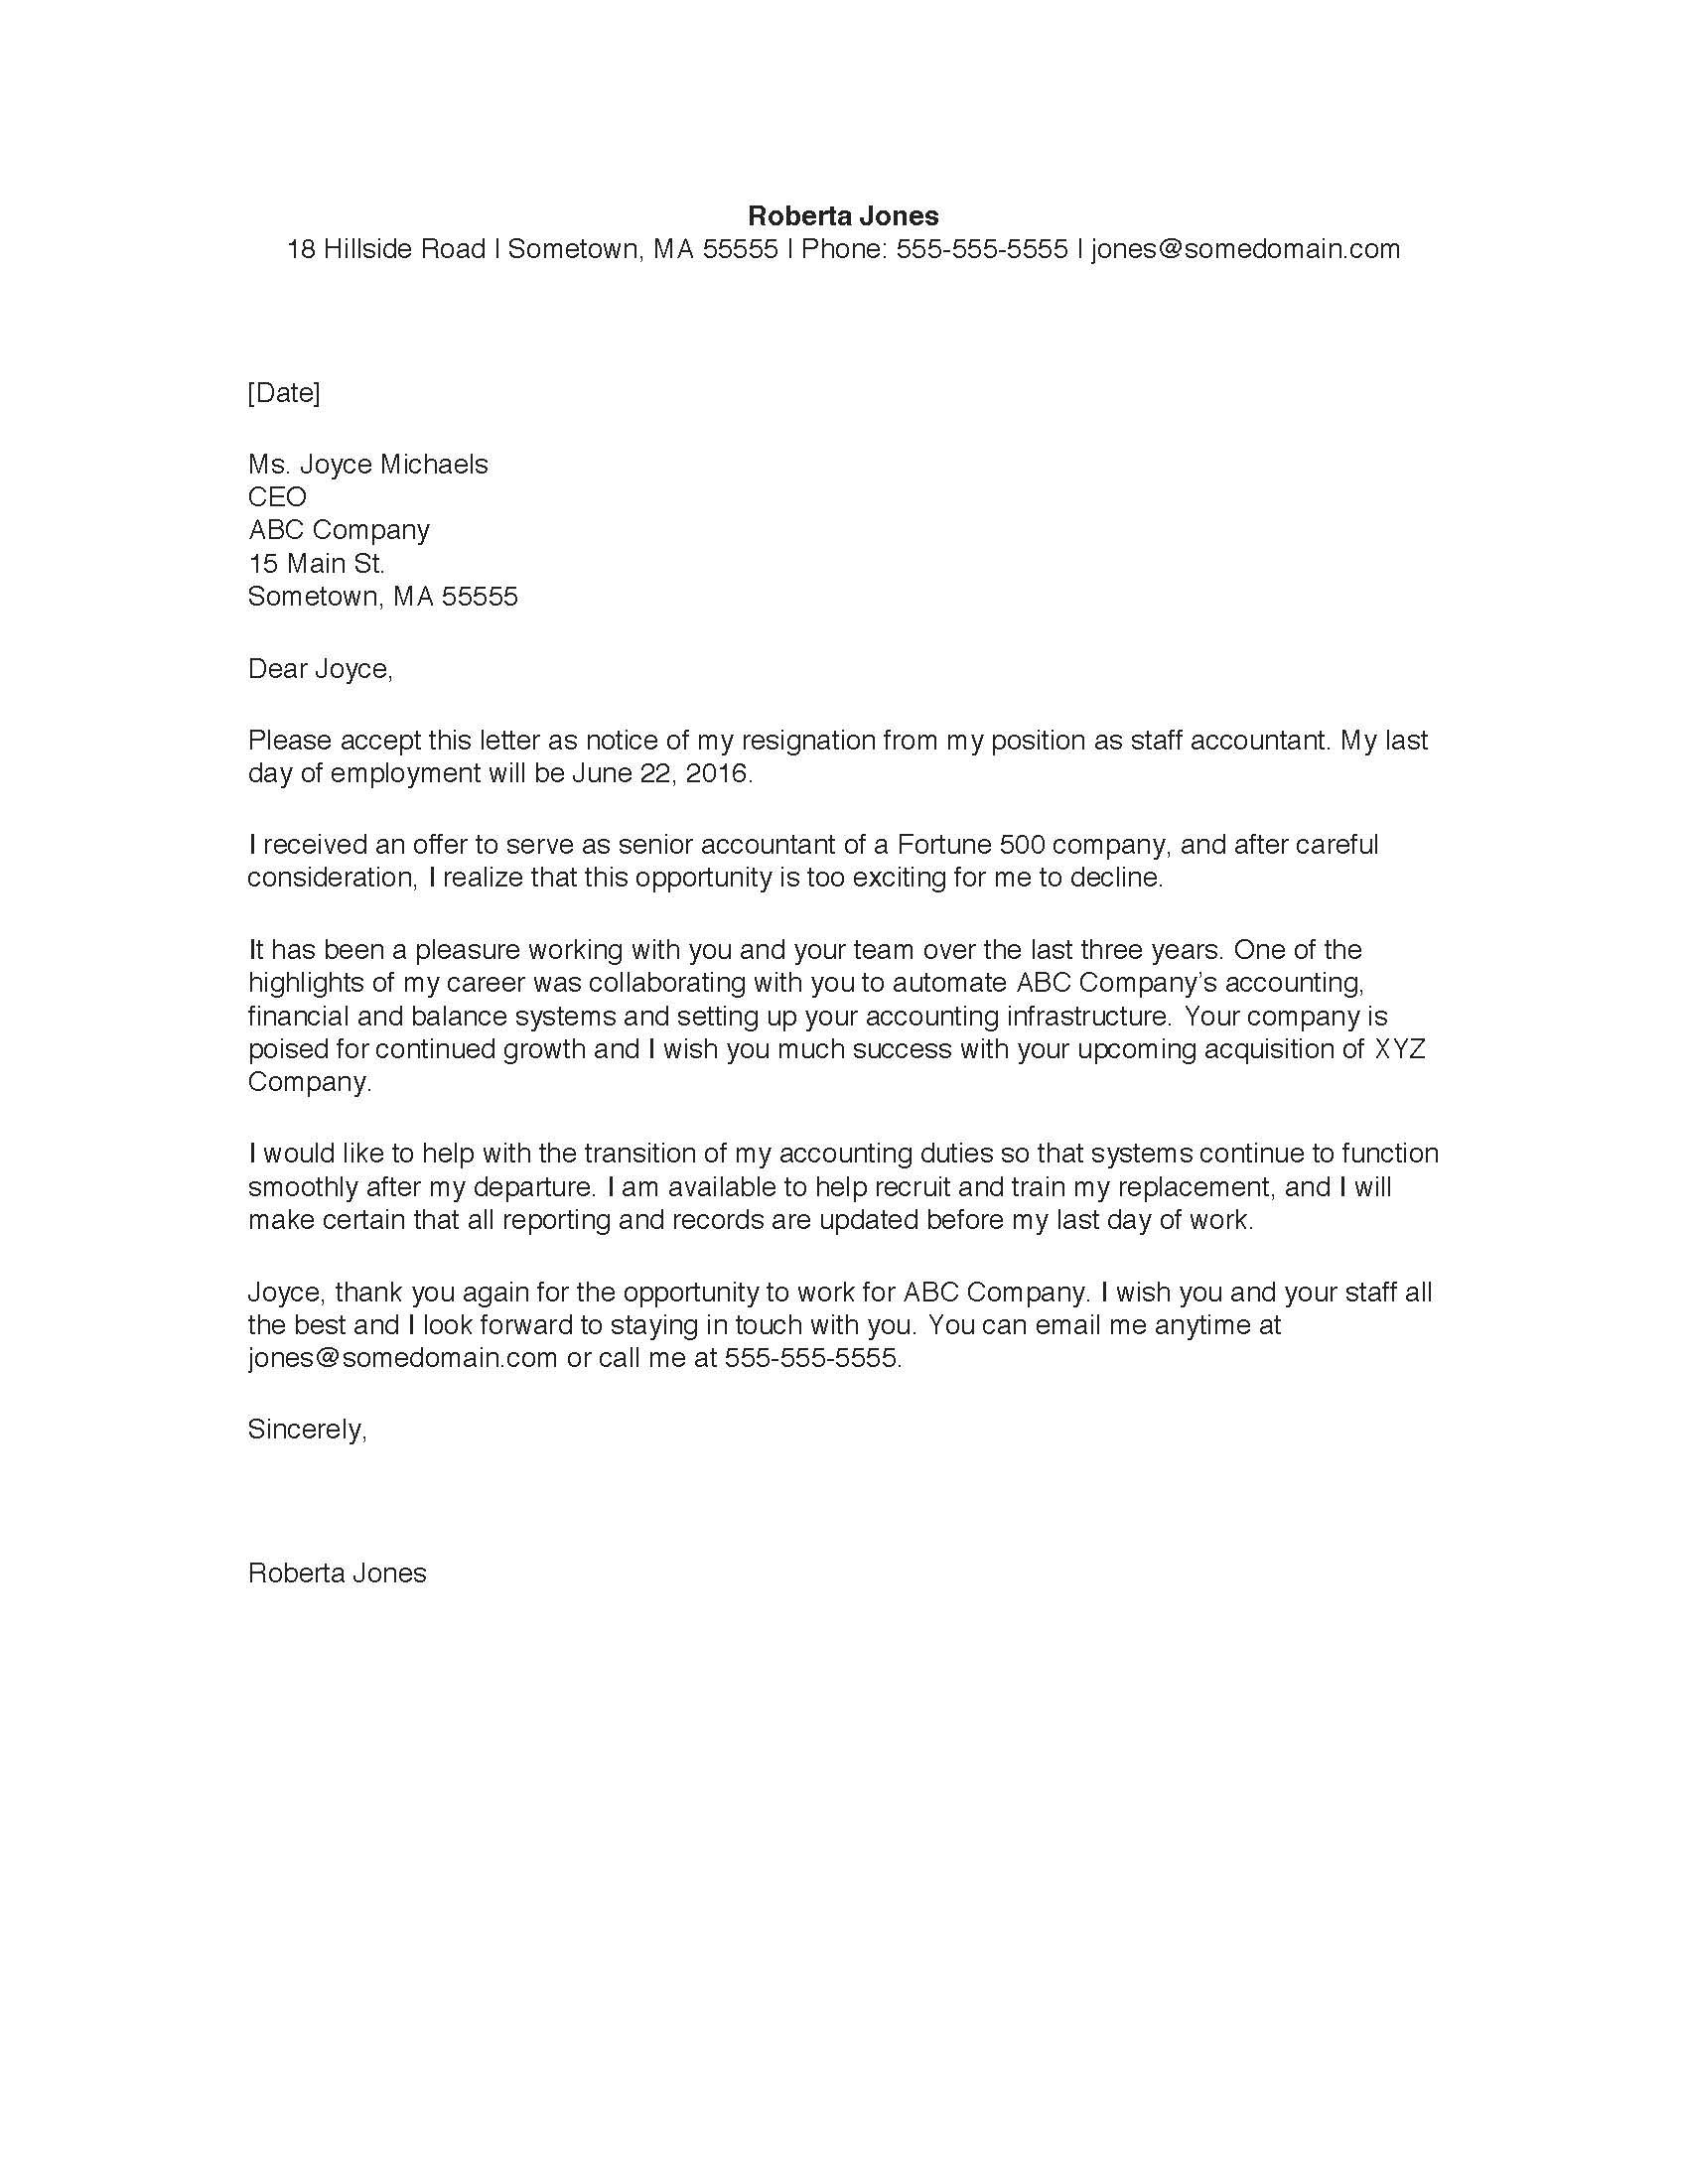 Final Notice before Legal Action Letter Template Uk - Sample Resignation Letter Pinterest